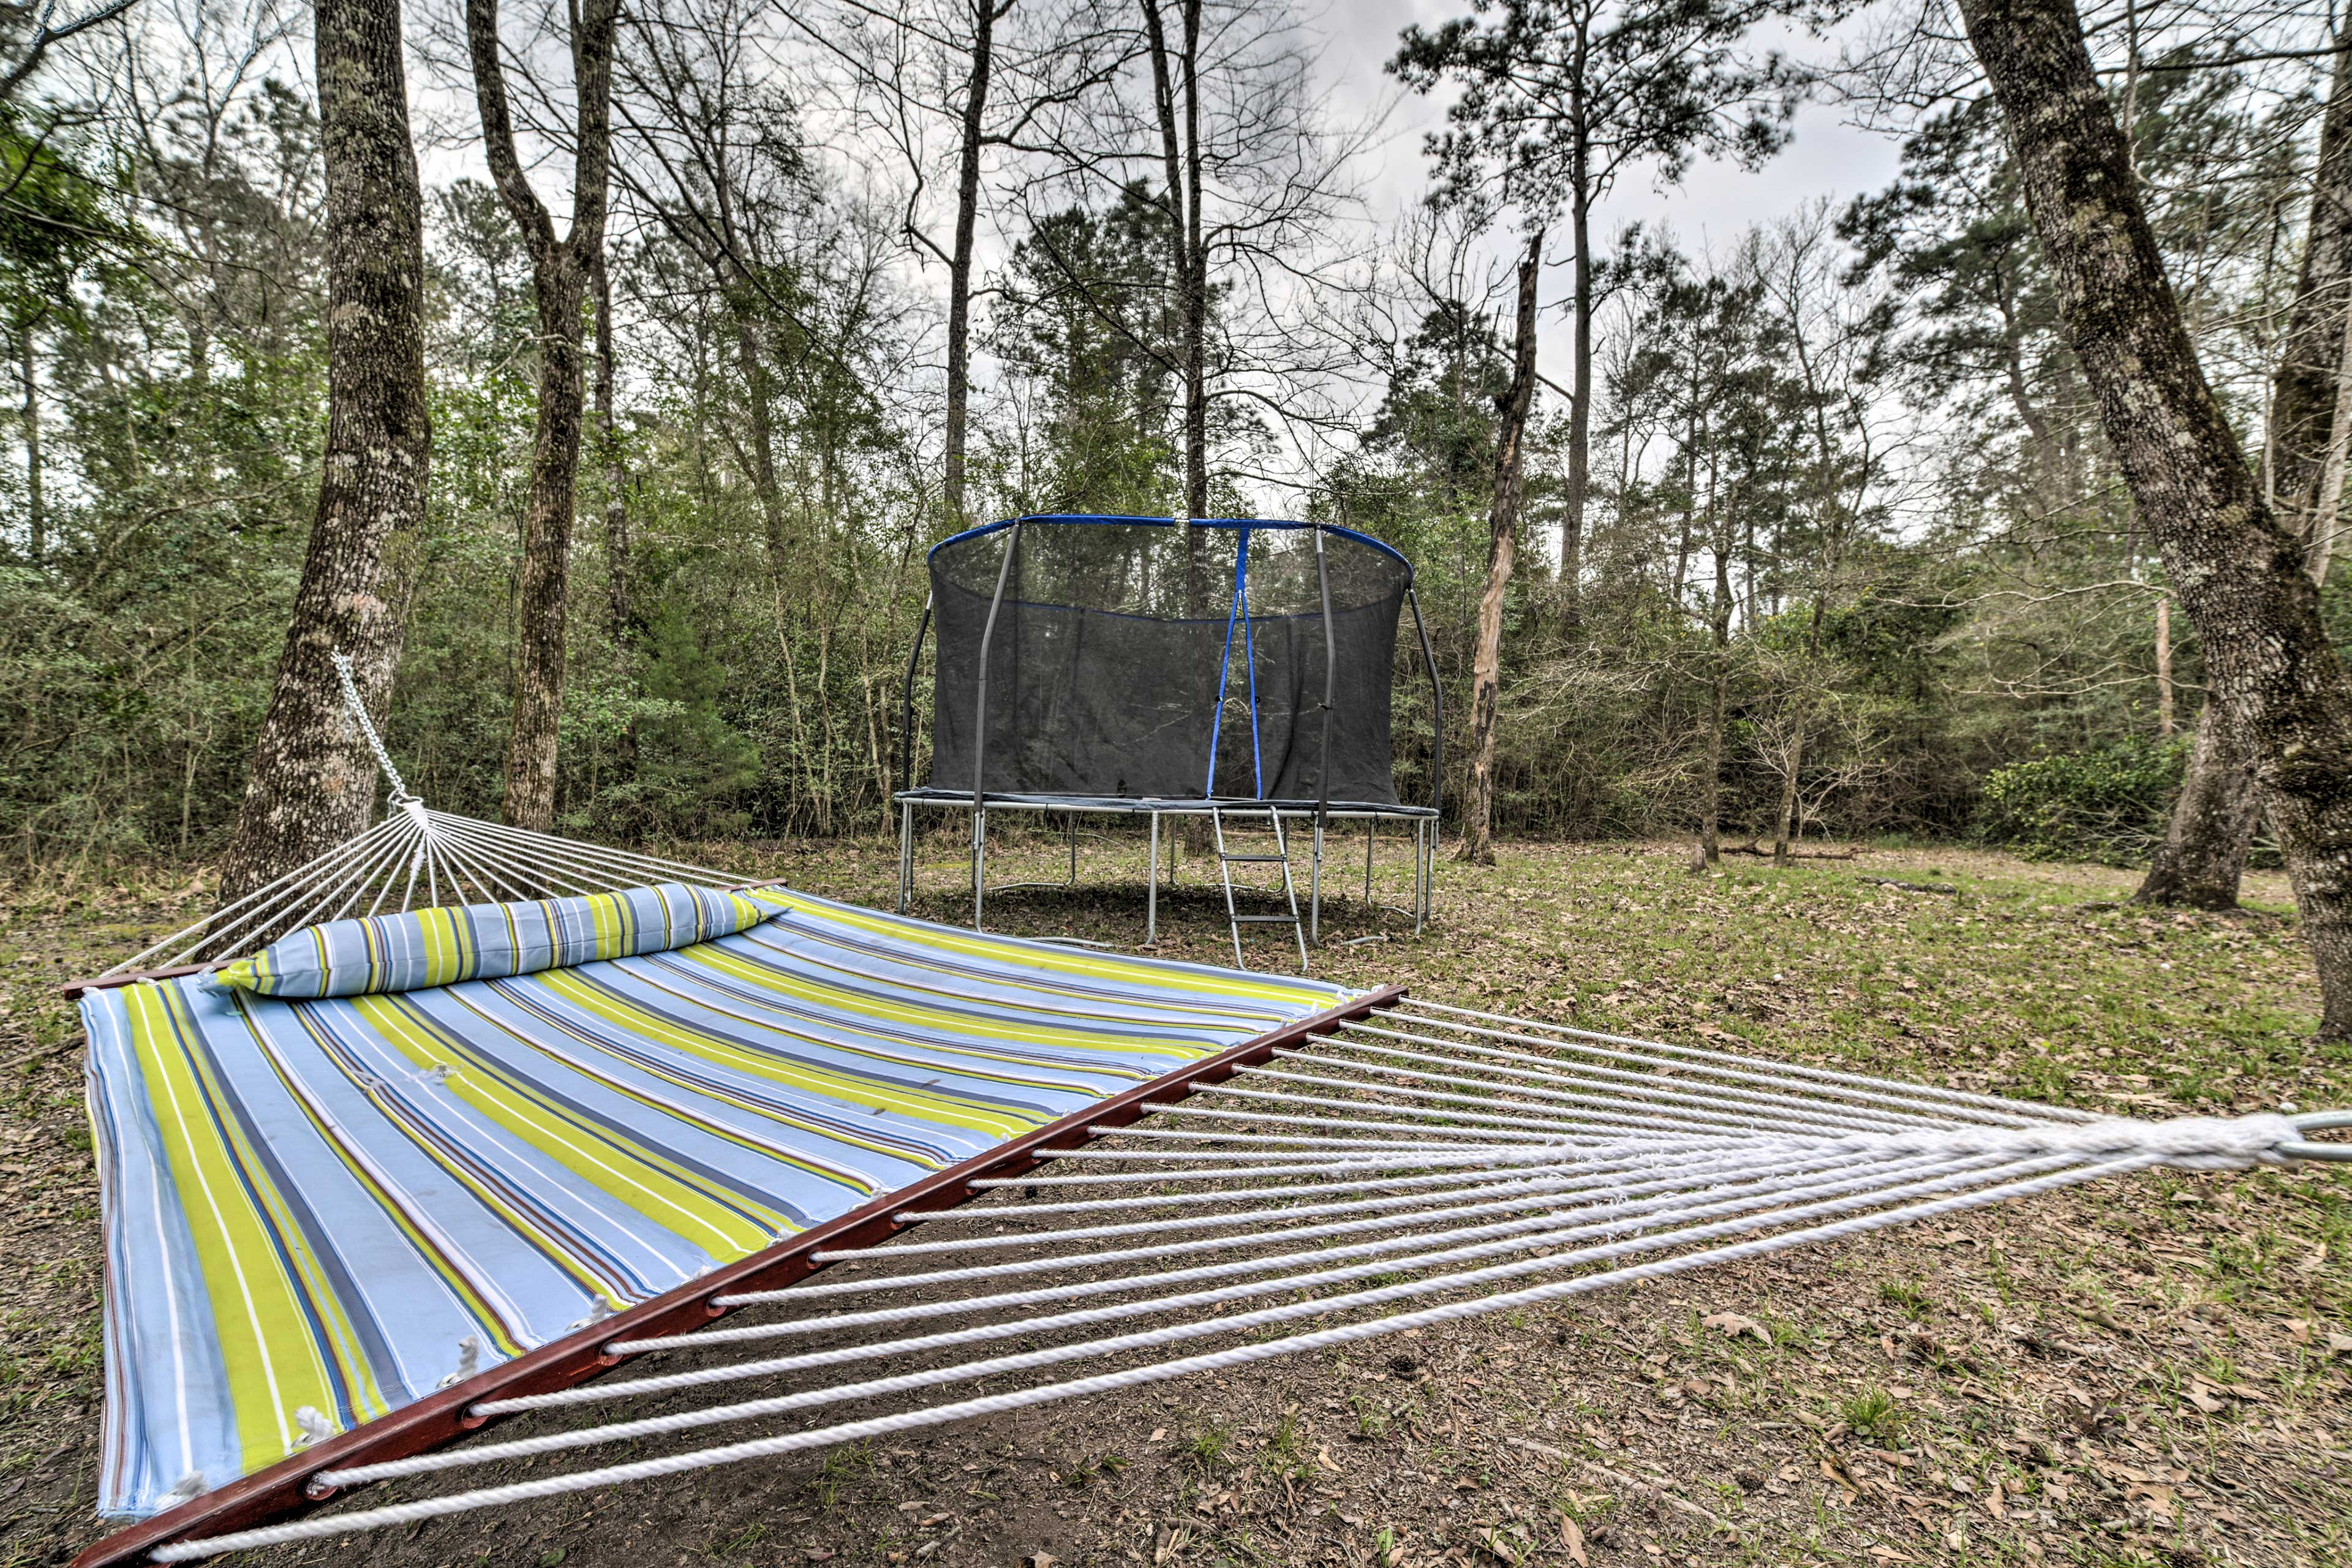 Spend time outside on and breathe in the fresh air on the hammock.